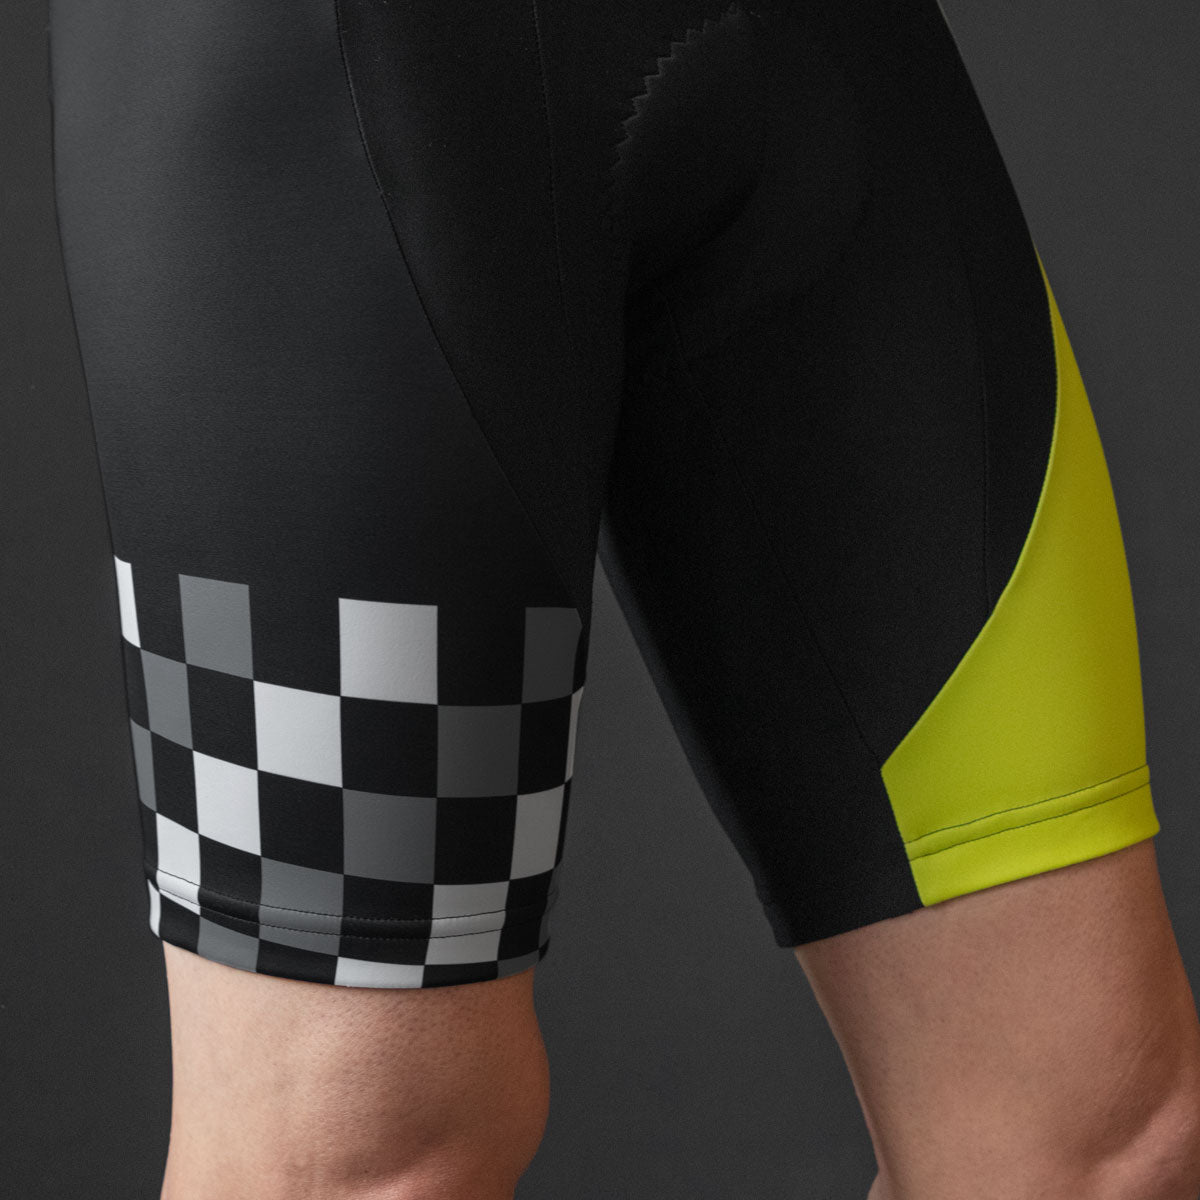 Mach 6 Bib Shorts (YELLOW)